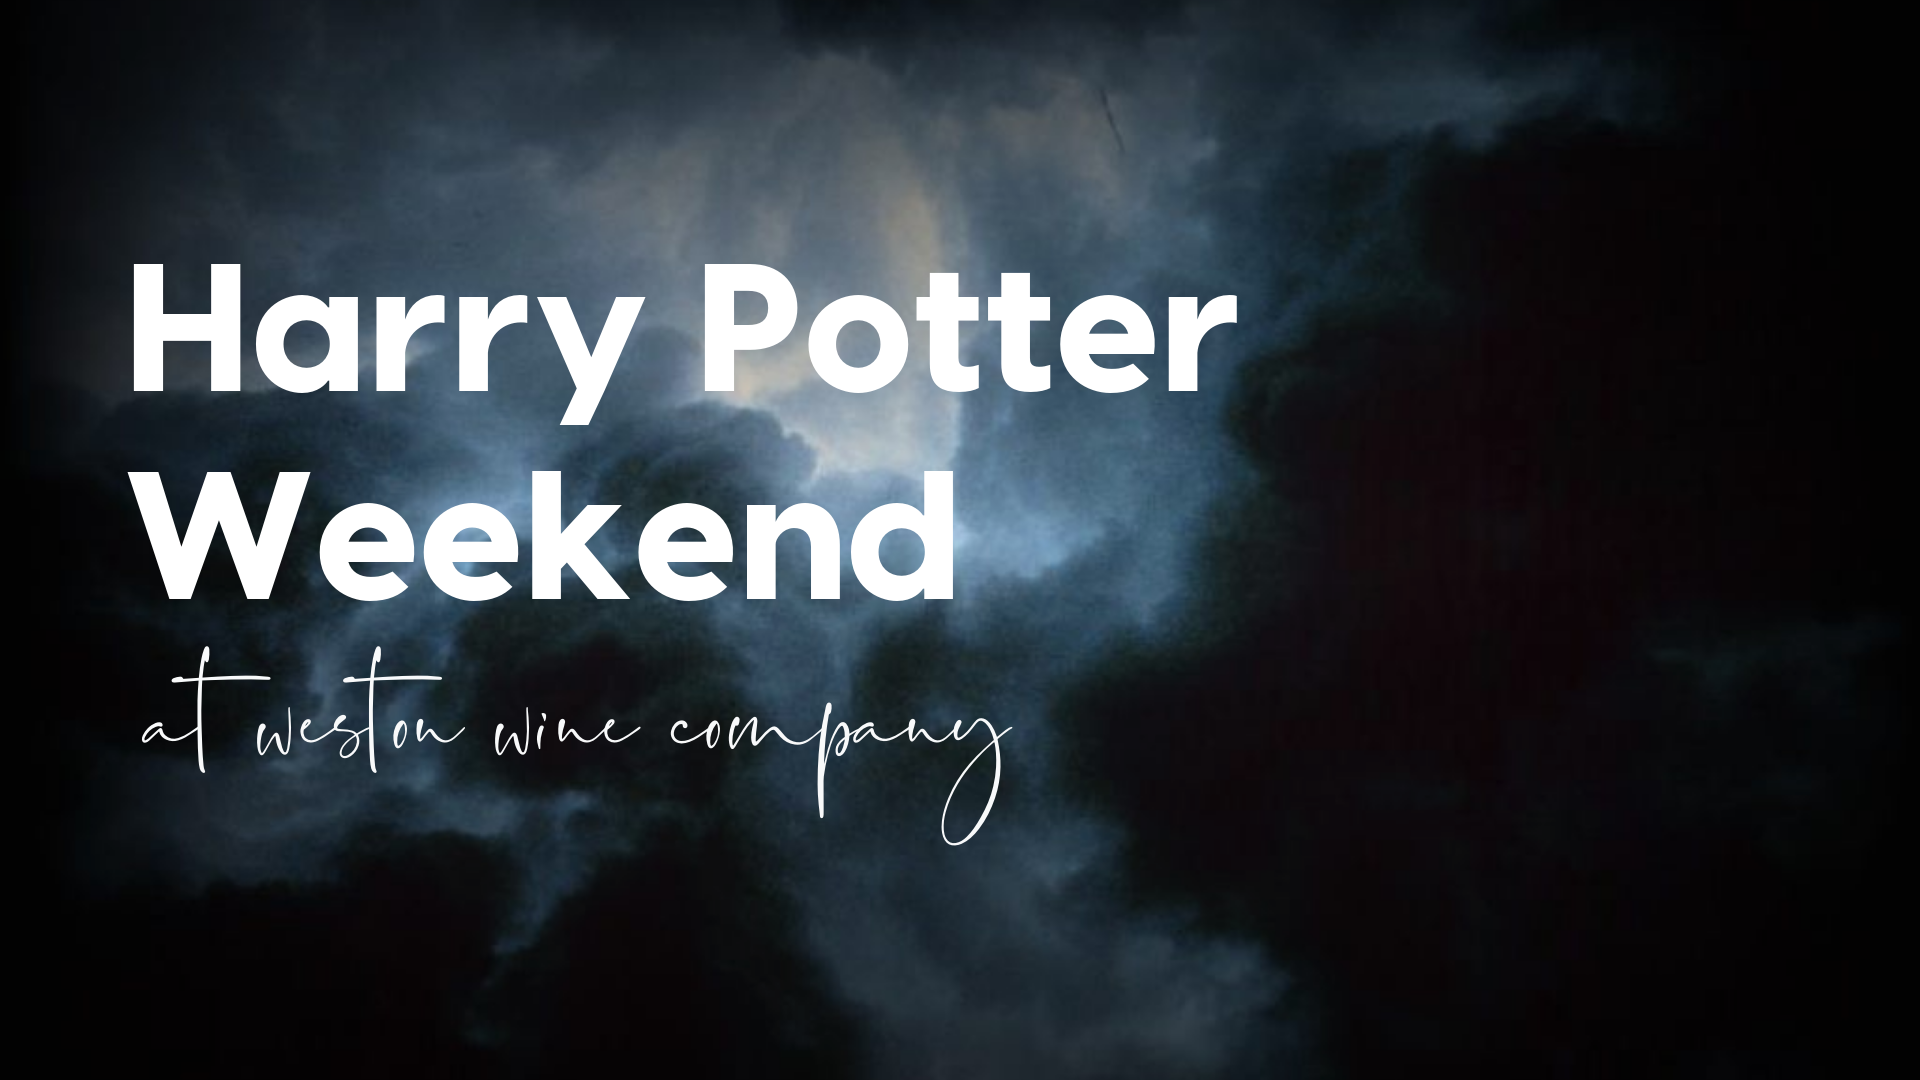 Harry Potter Weekend Event Cover.png